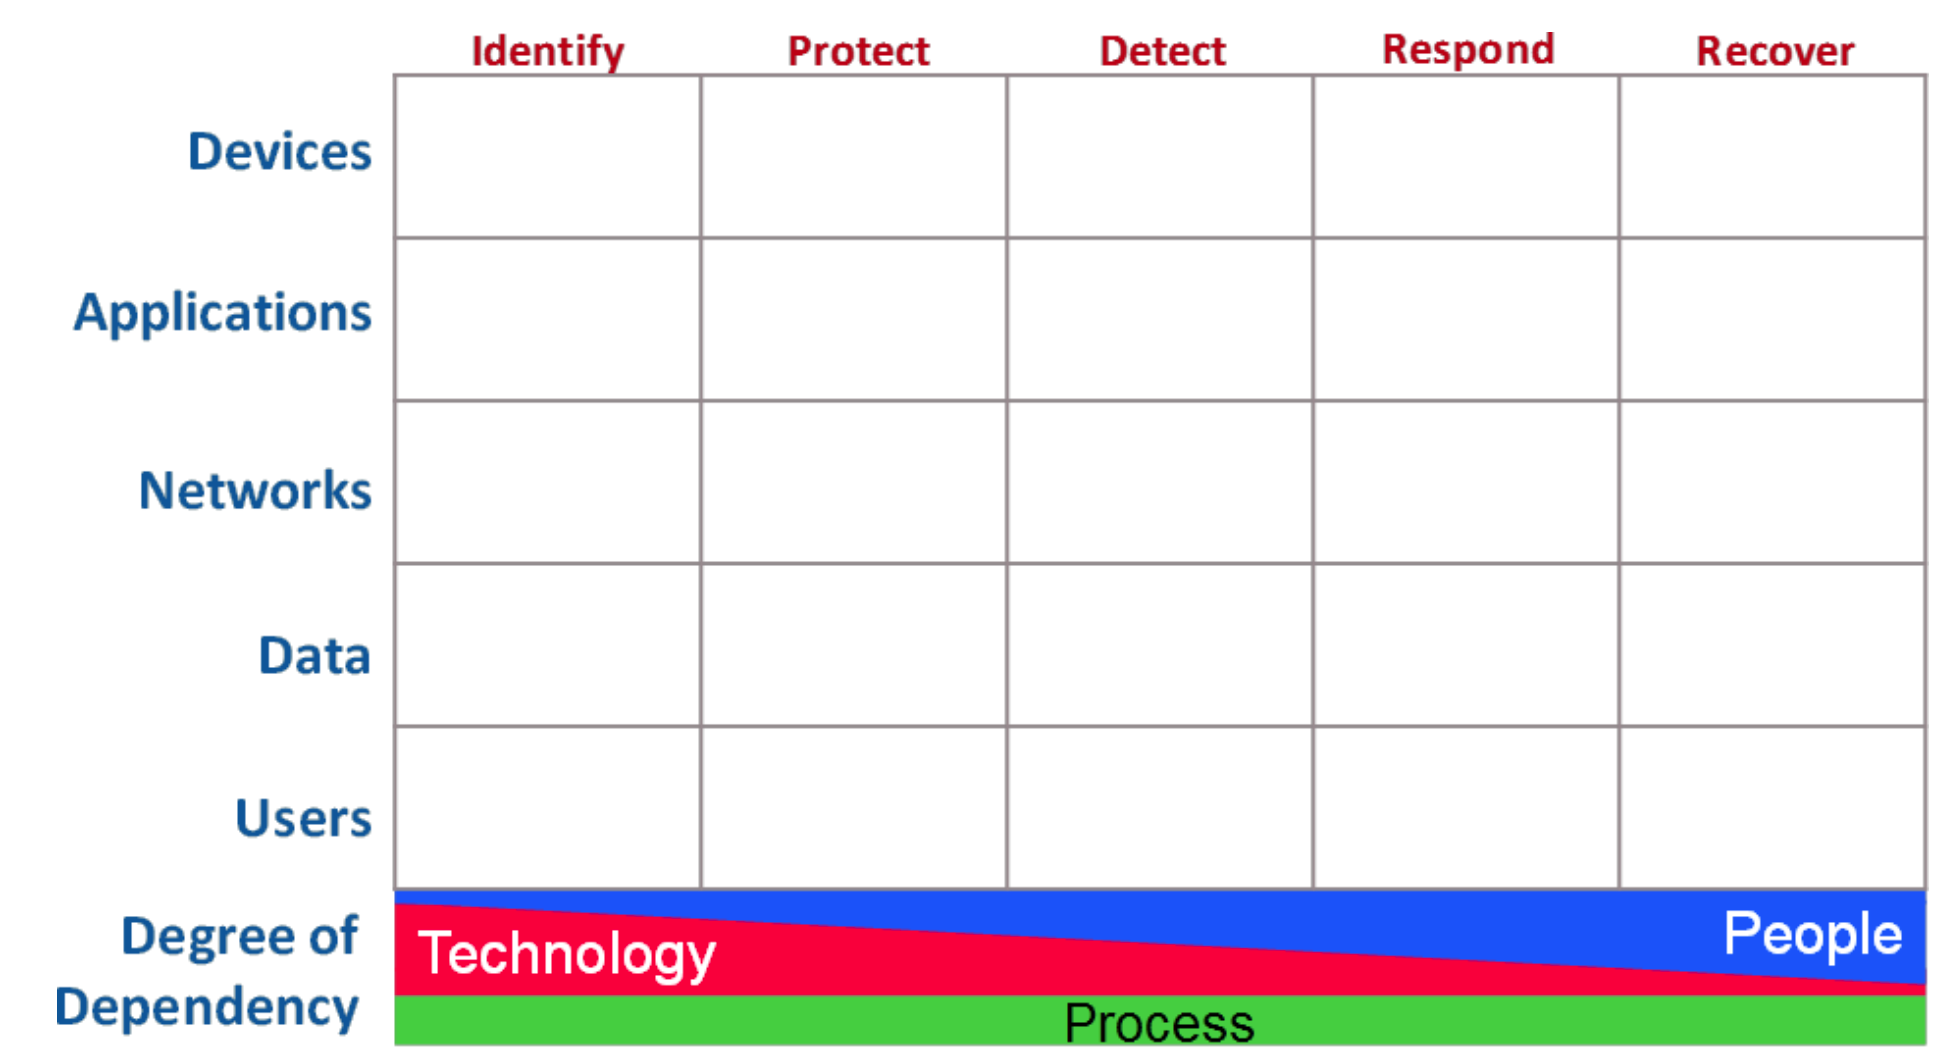 OWASP Cyber Defense Matrix